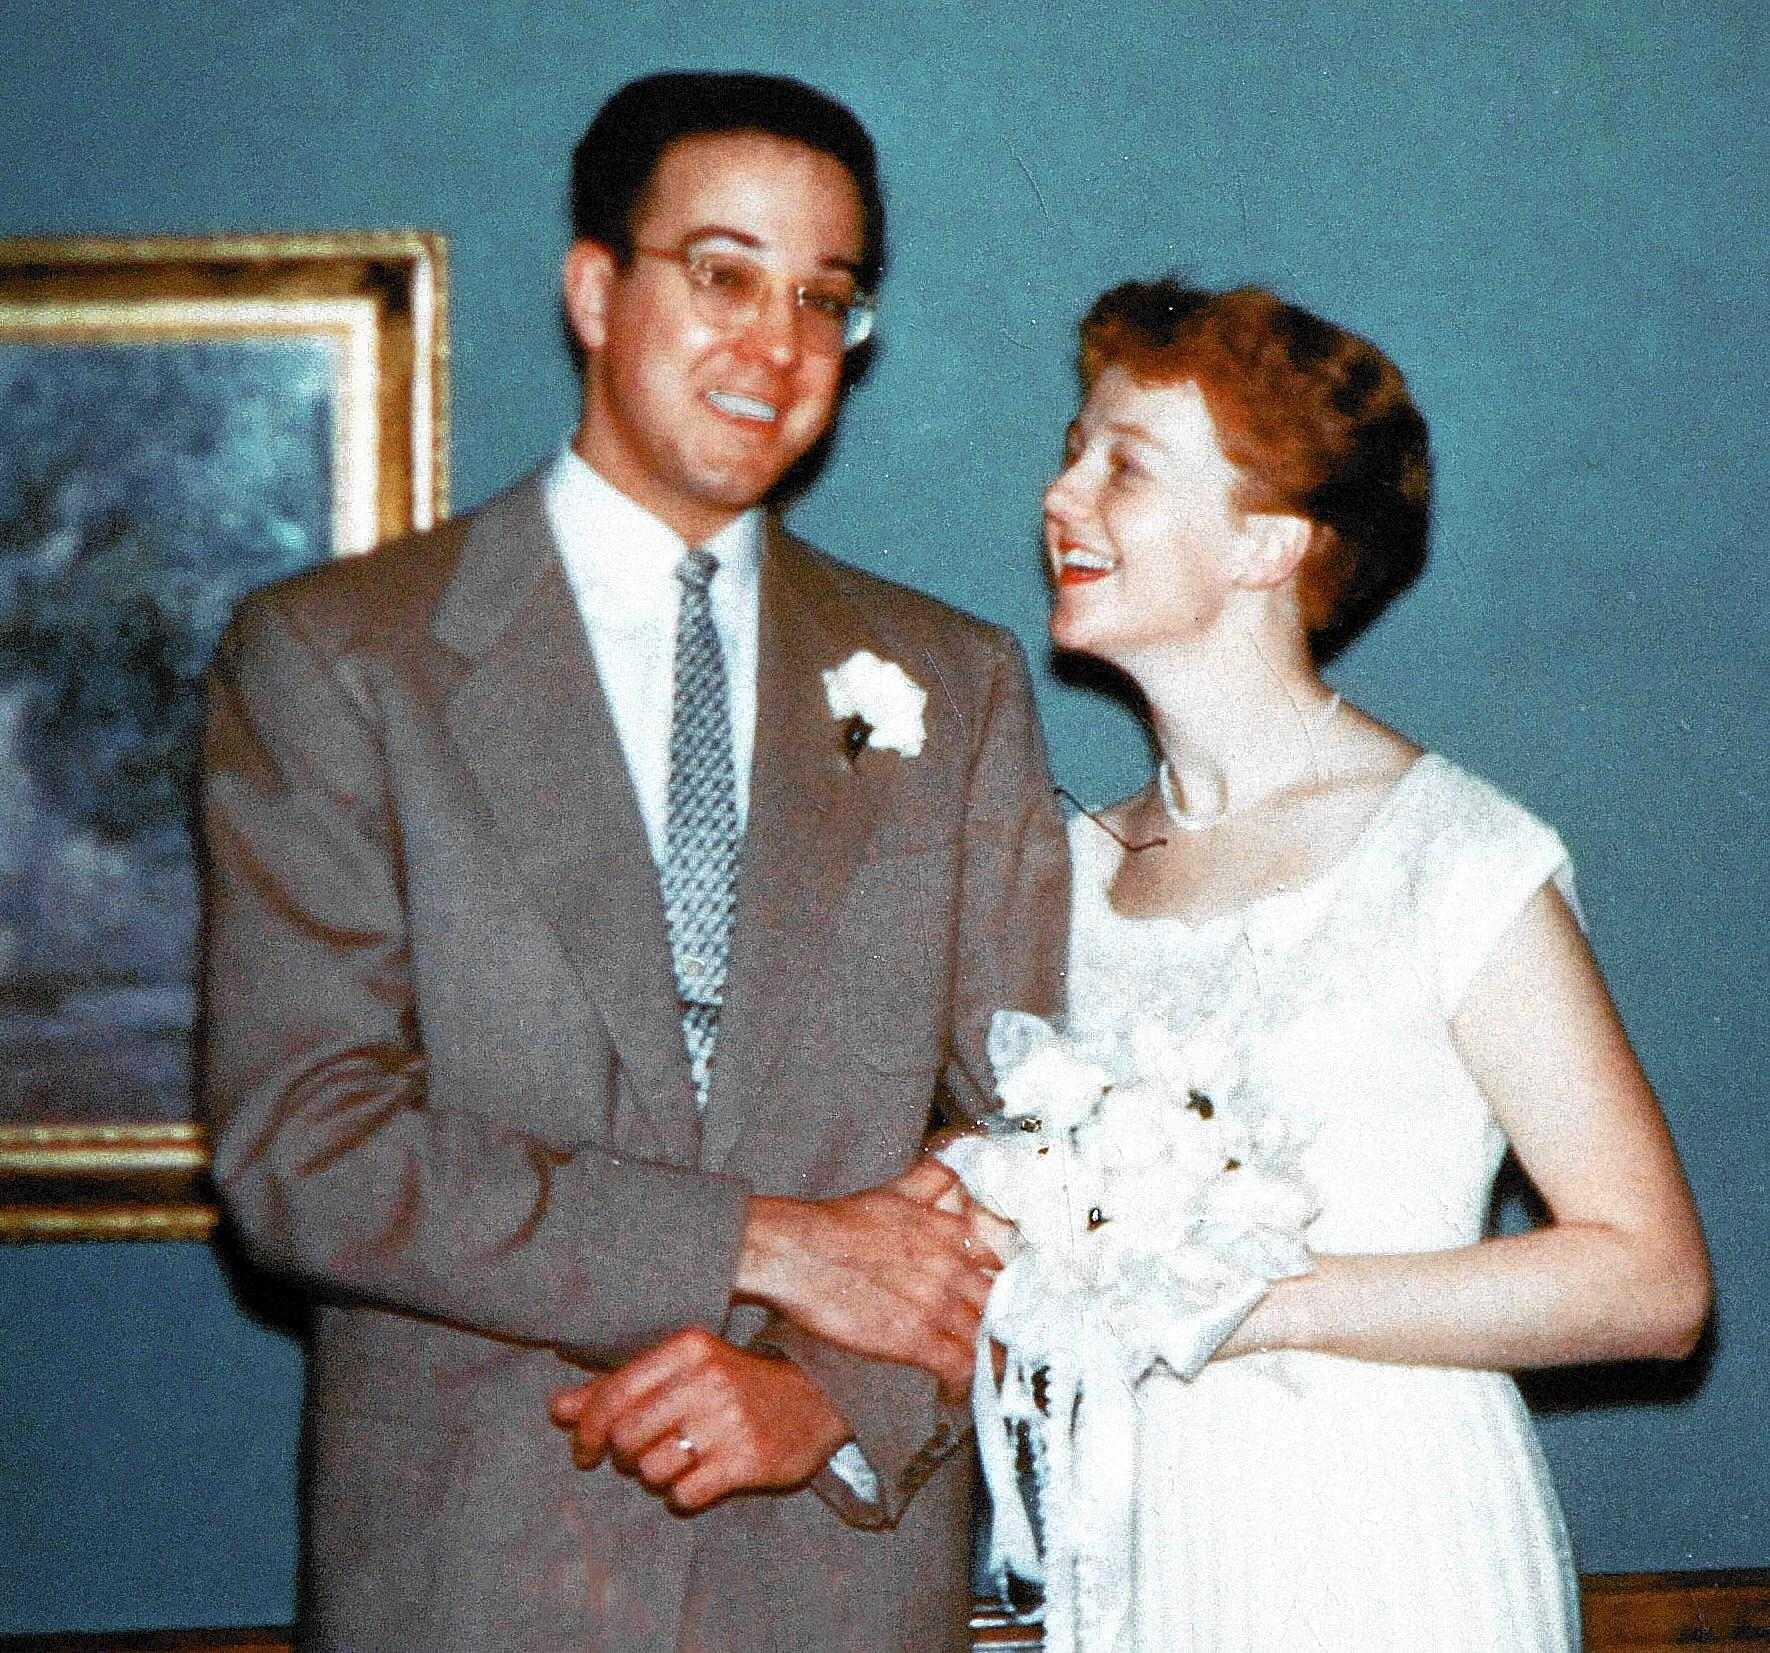 Jens and Fran Zorn on their wedding day, Jan. 28, 1954.